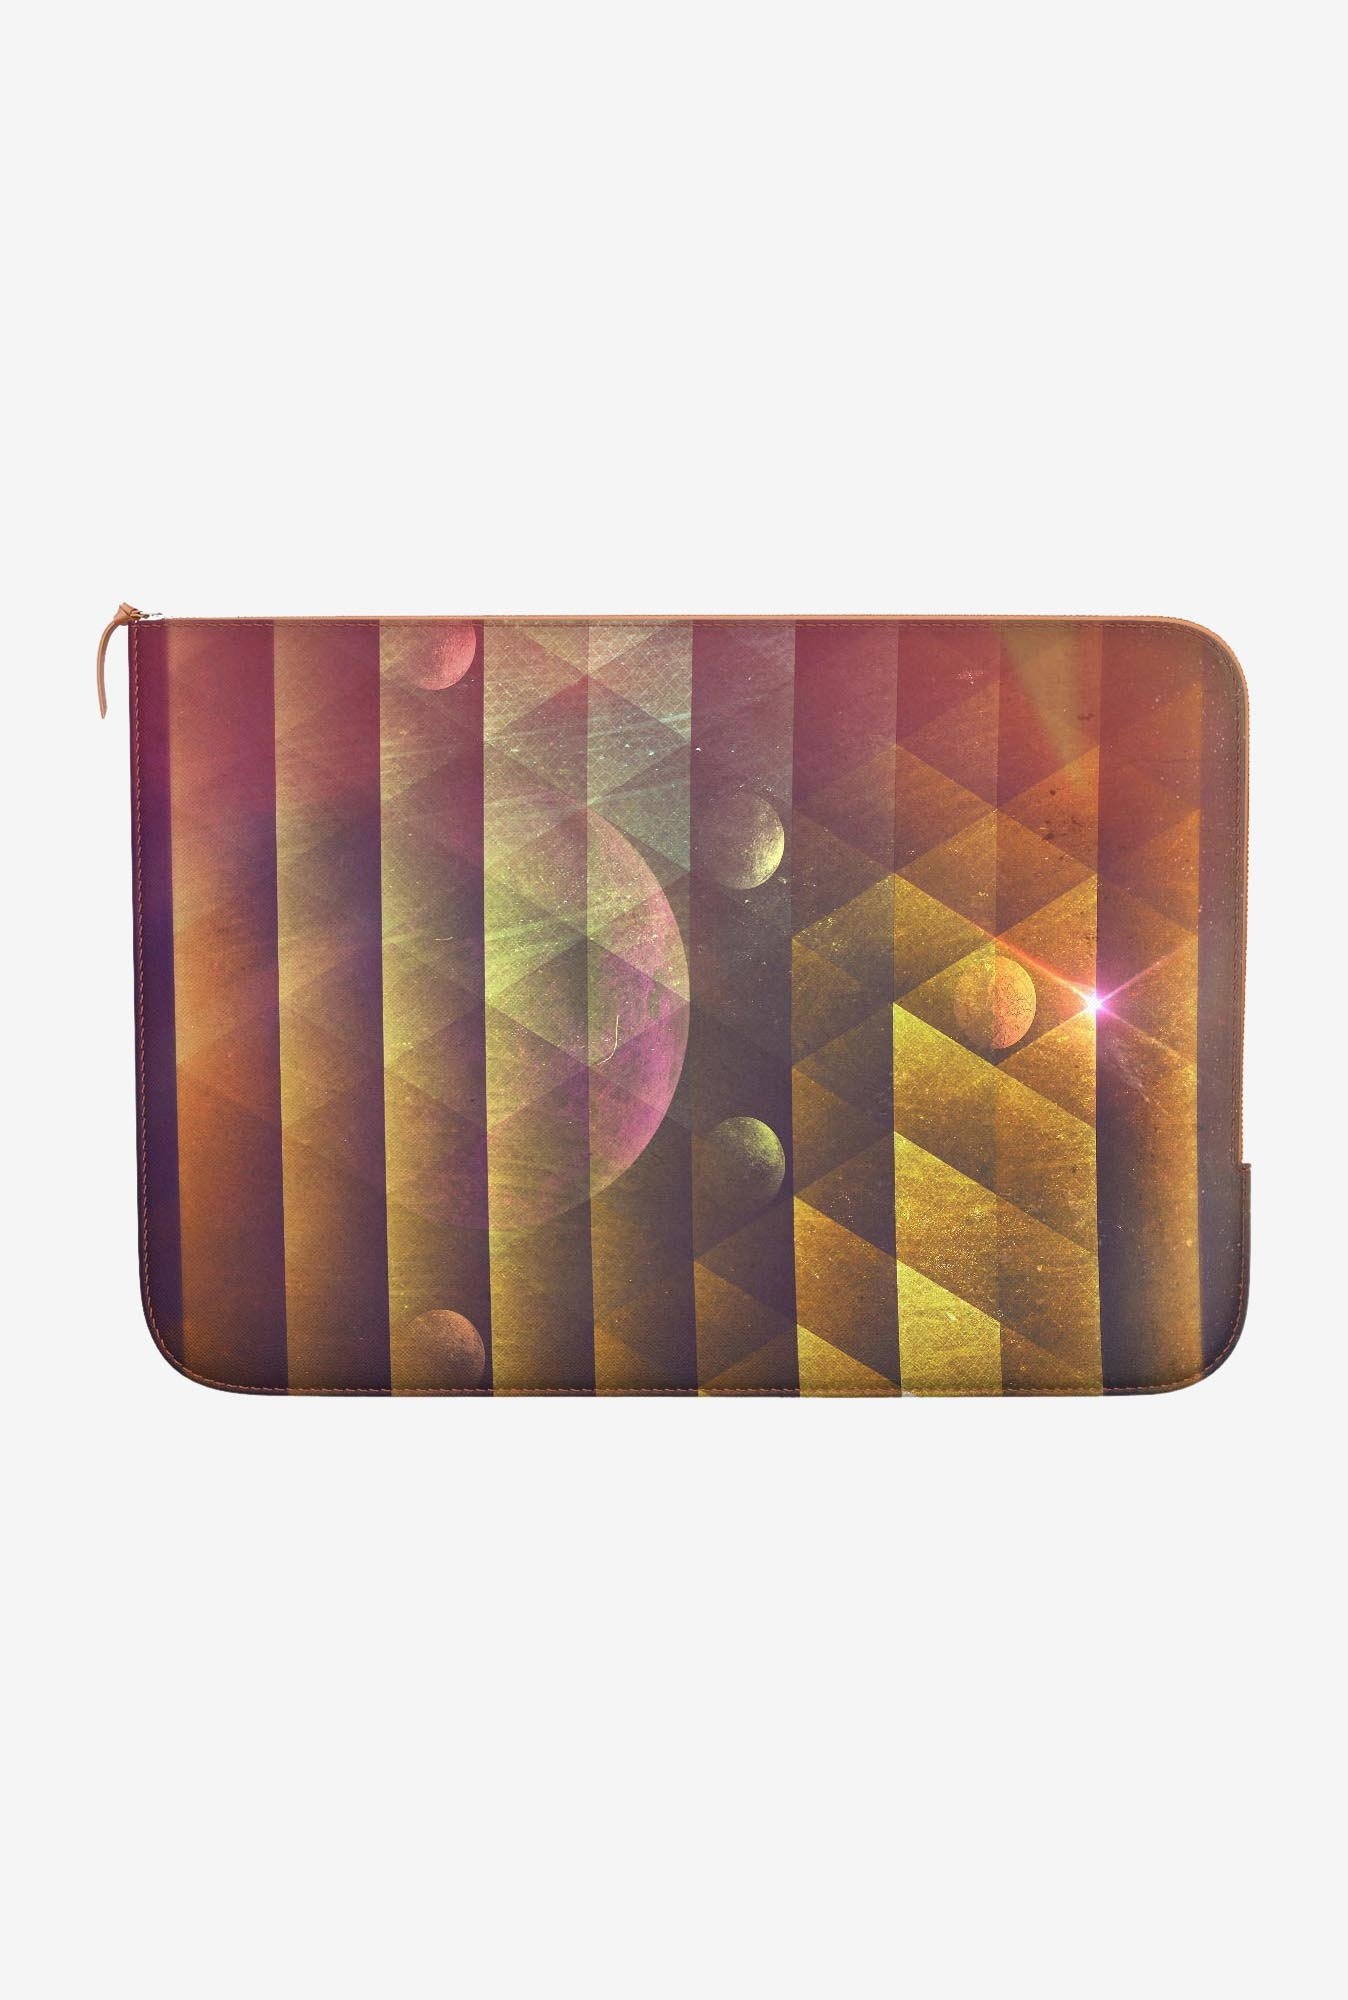 DailyObjects Pyncyl Myx Hrxtl Macbook Pro 15 Zippered Sleeve